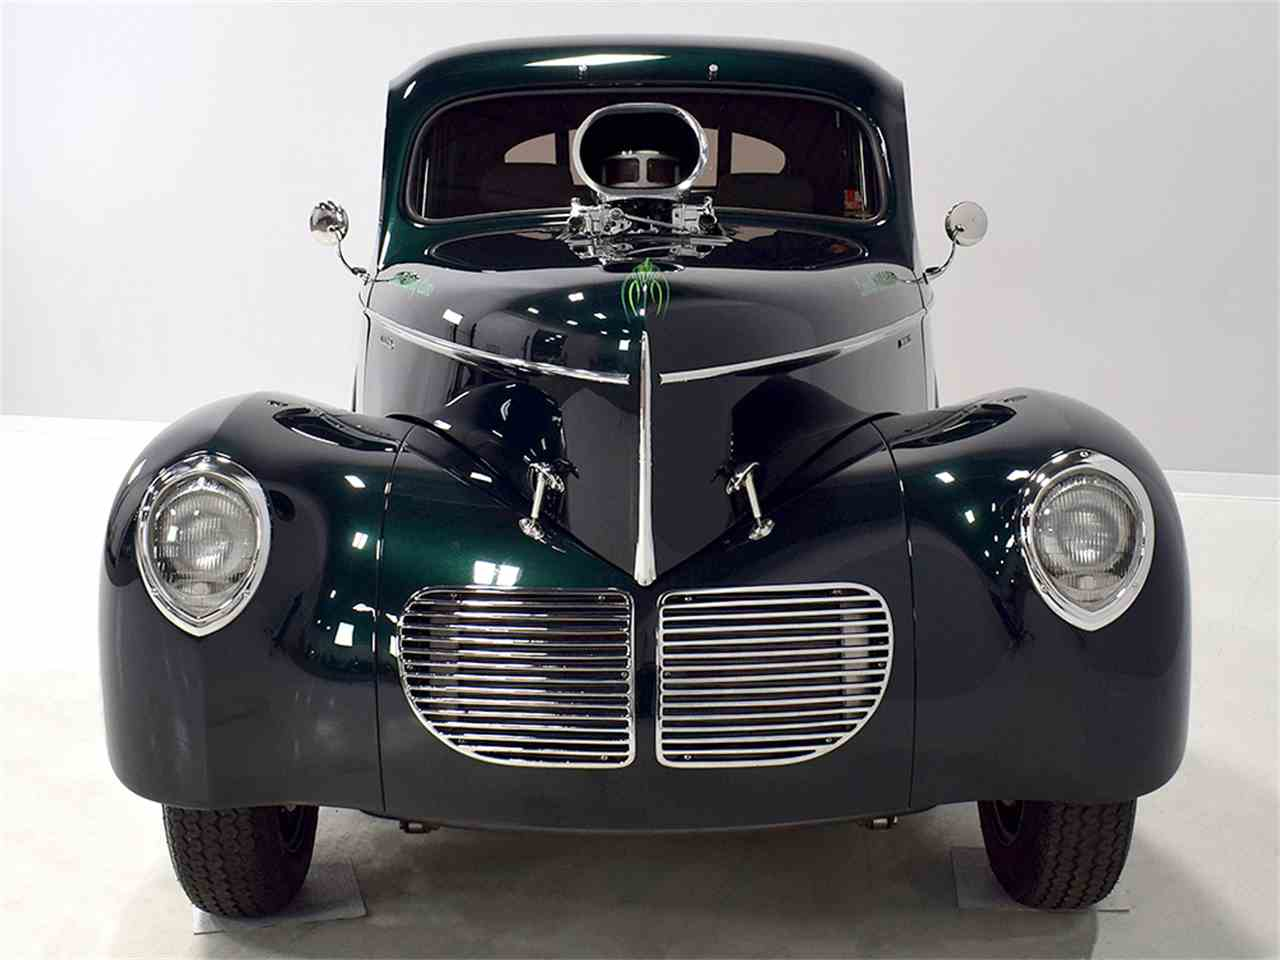 Large Picture of Classic '40 Willys Coupe - $99,900.00 Offered by Harwood Motors, LTD. - MZB9